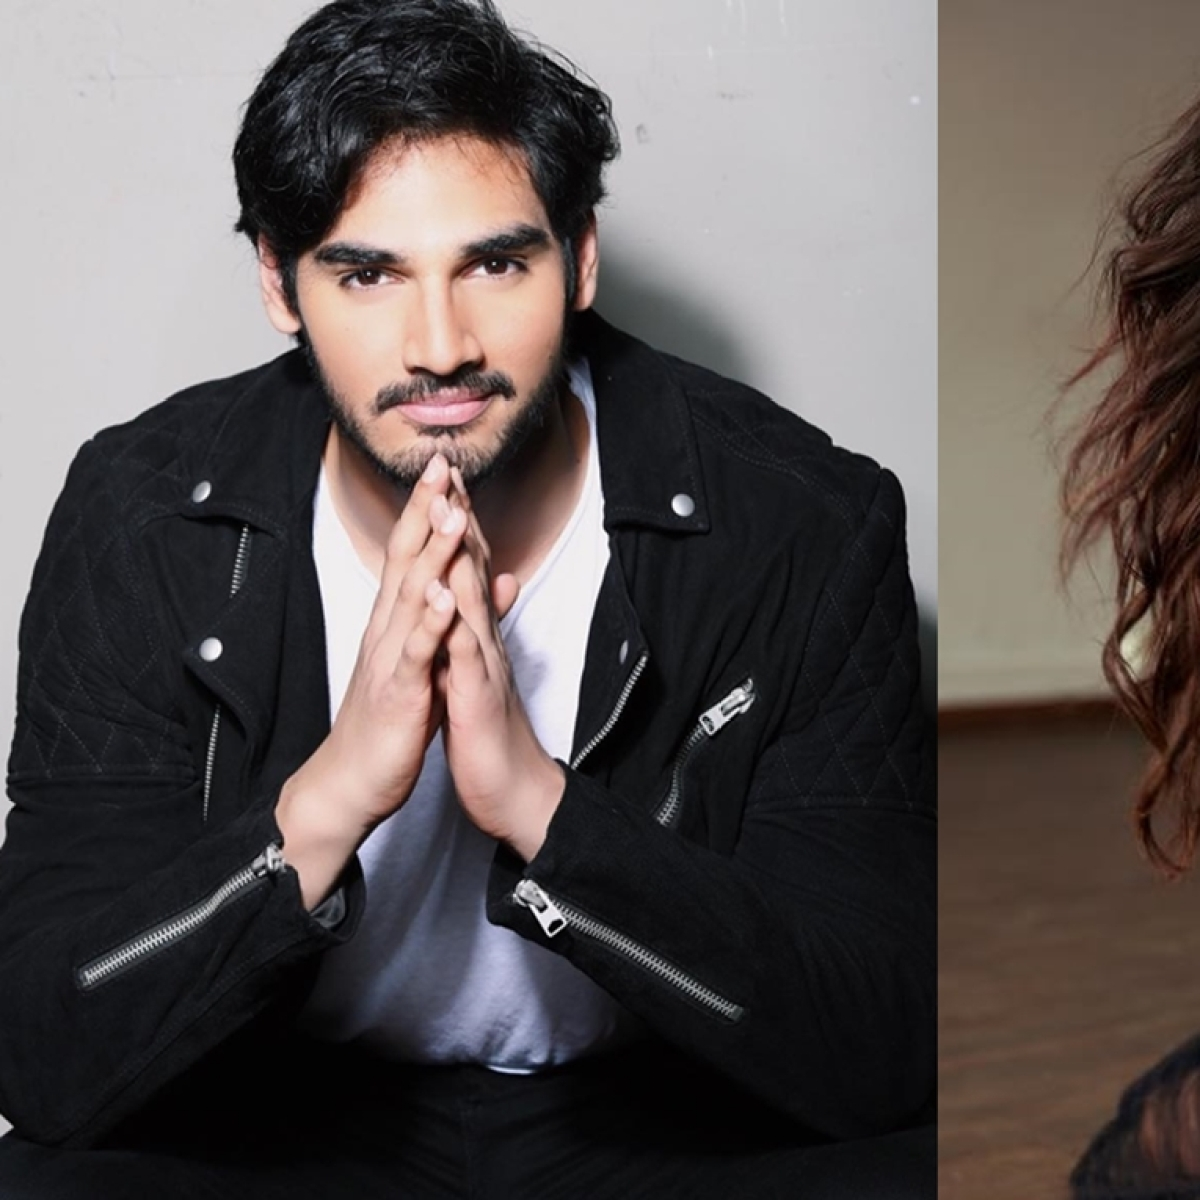 Class of 2021: From Ahan Shetty to Manushi Chhillar - Bollywood debutants coming up in New Year